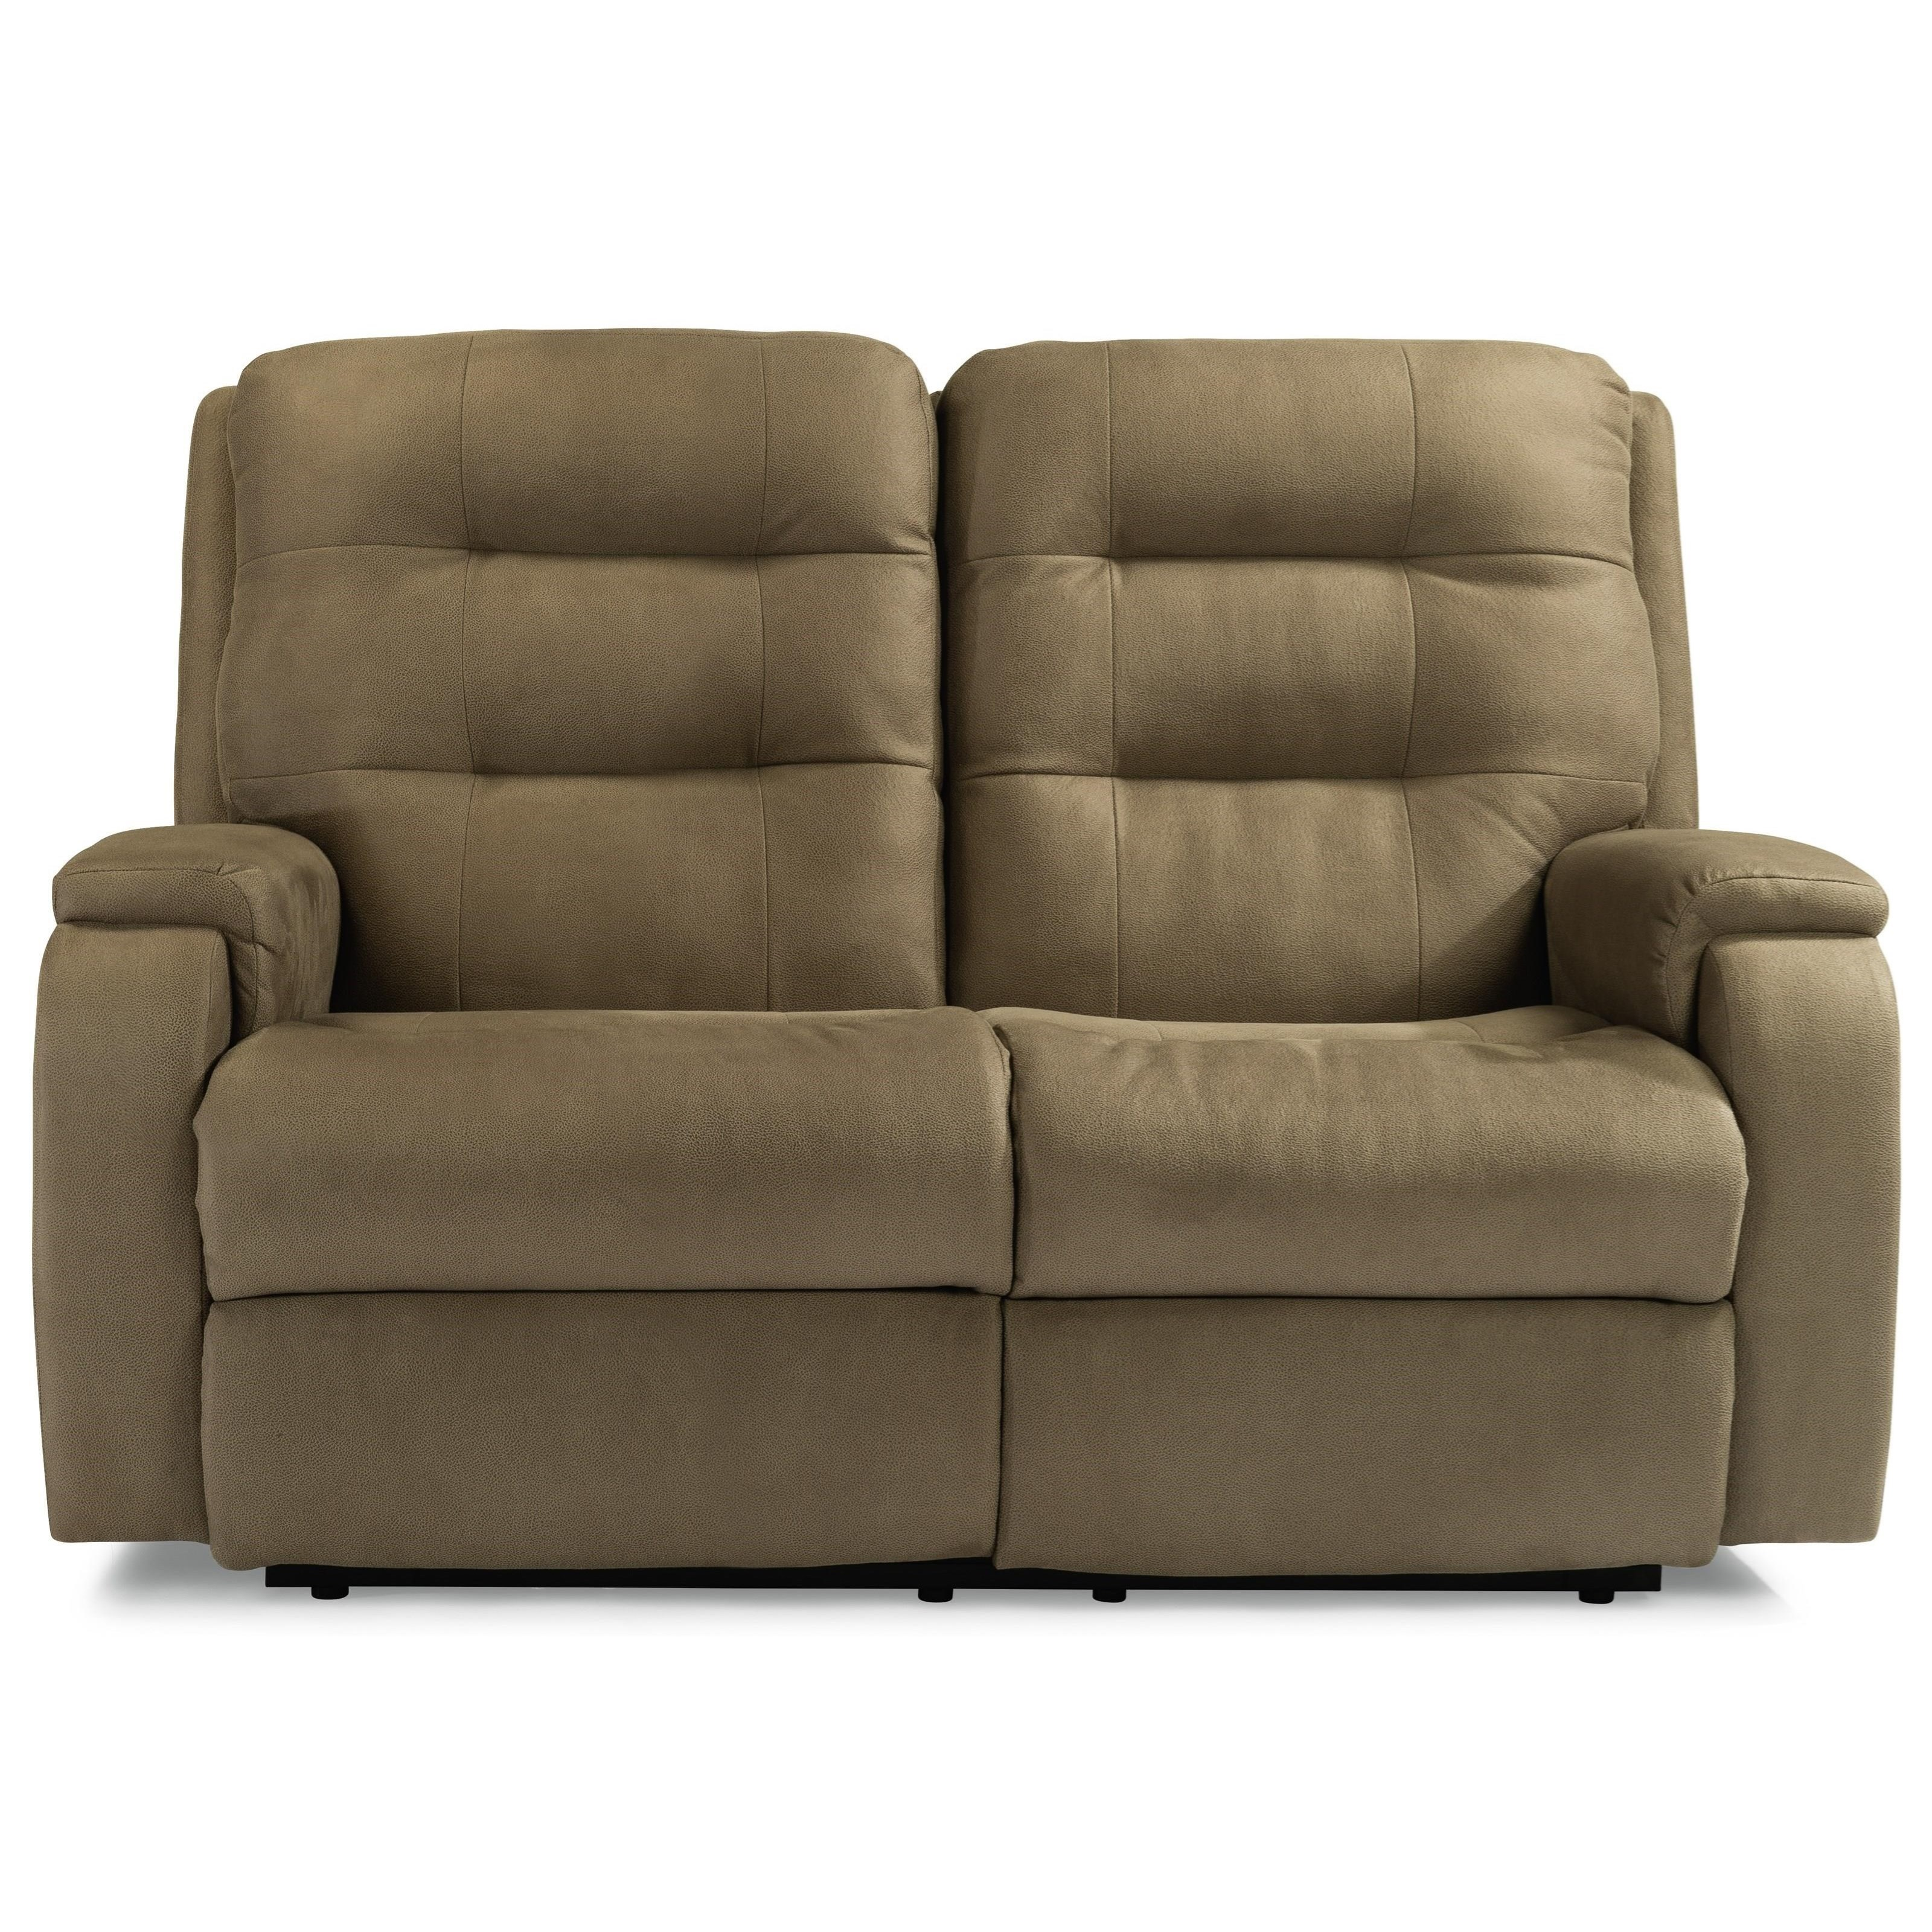 Granite Power Reclining Loveseat by Flexsteel at EFO Furniture Outlet